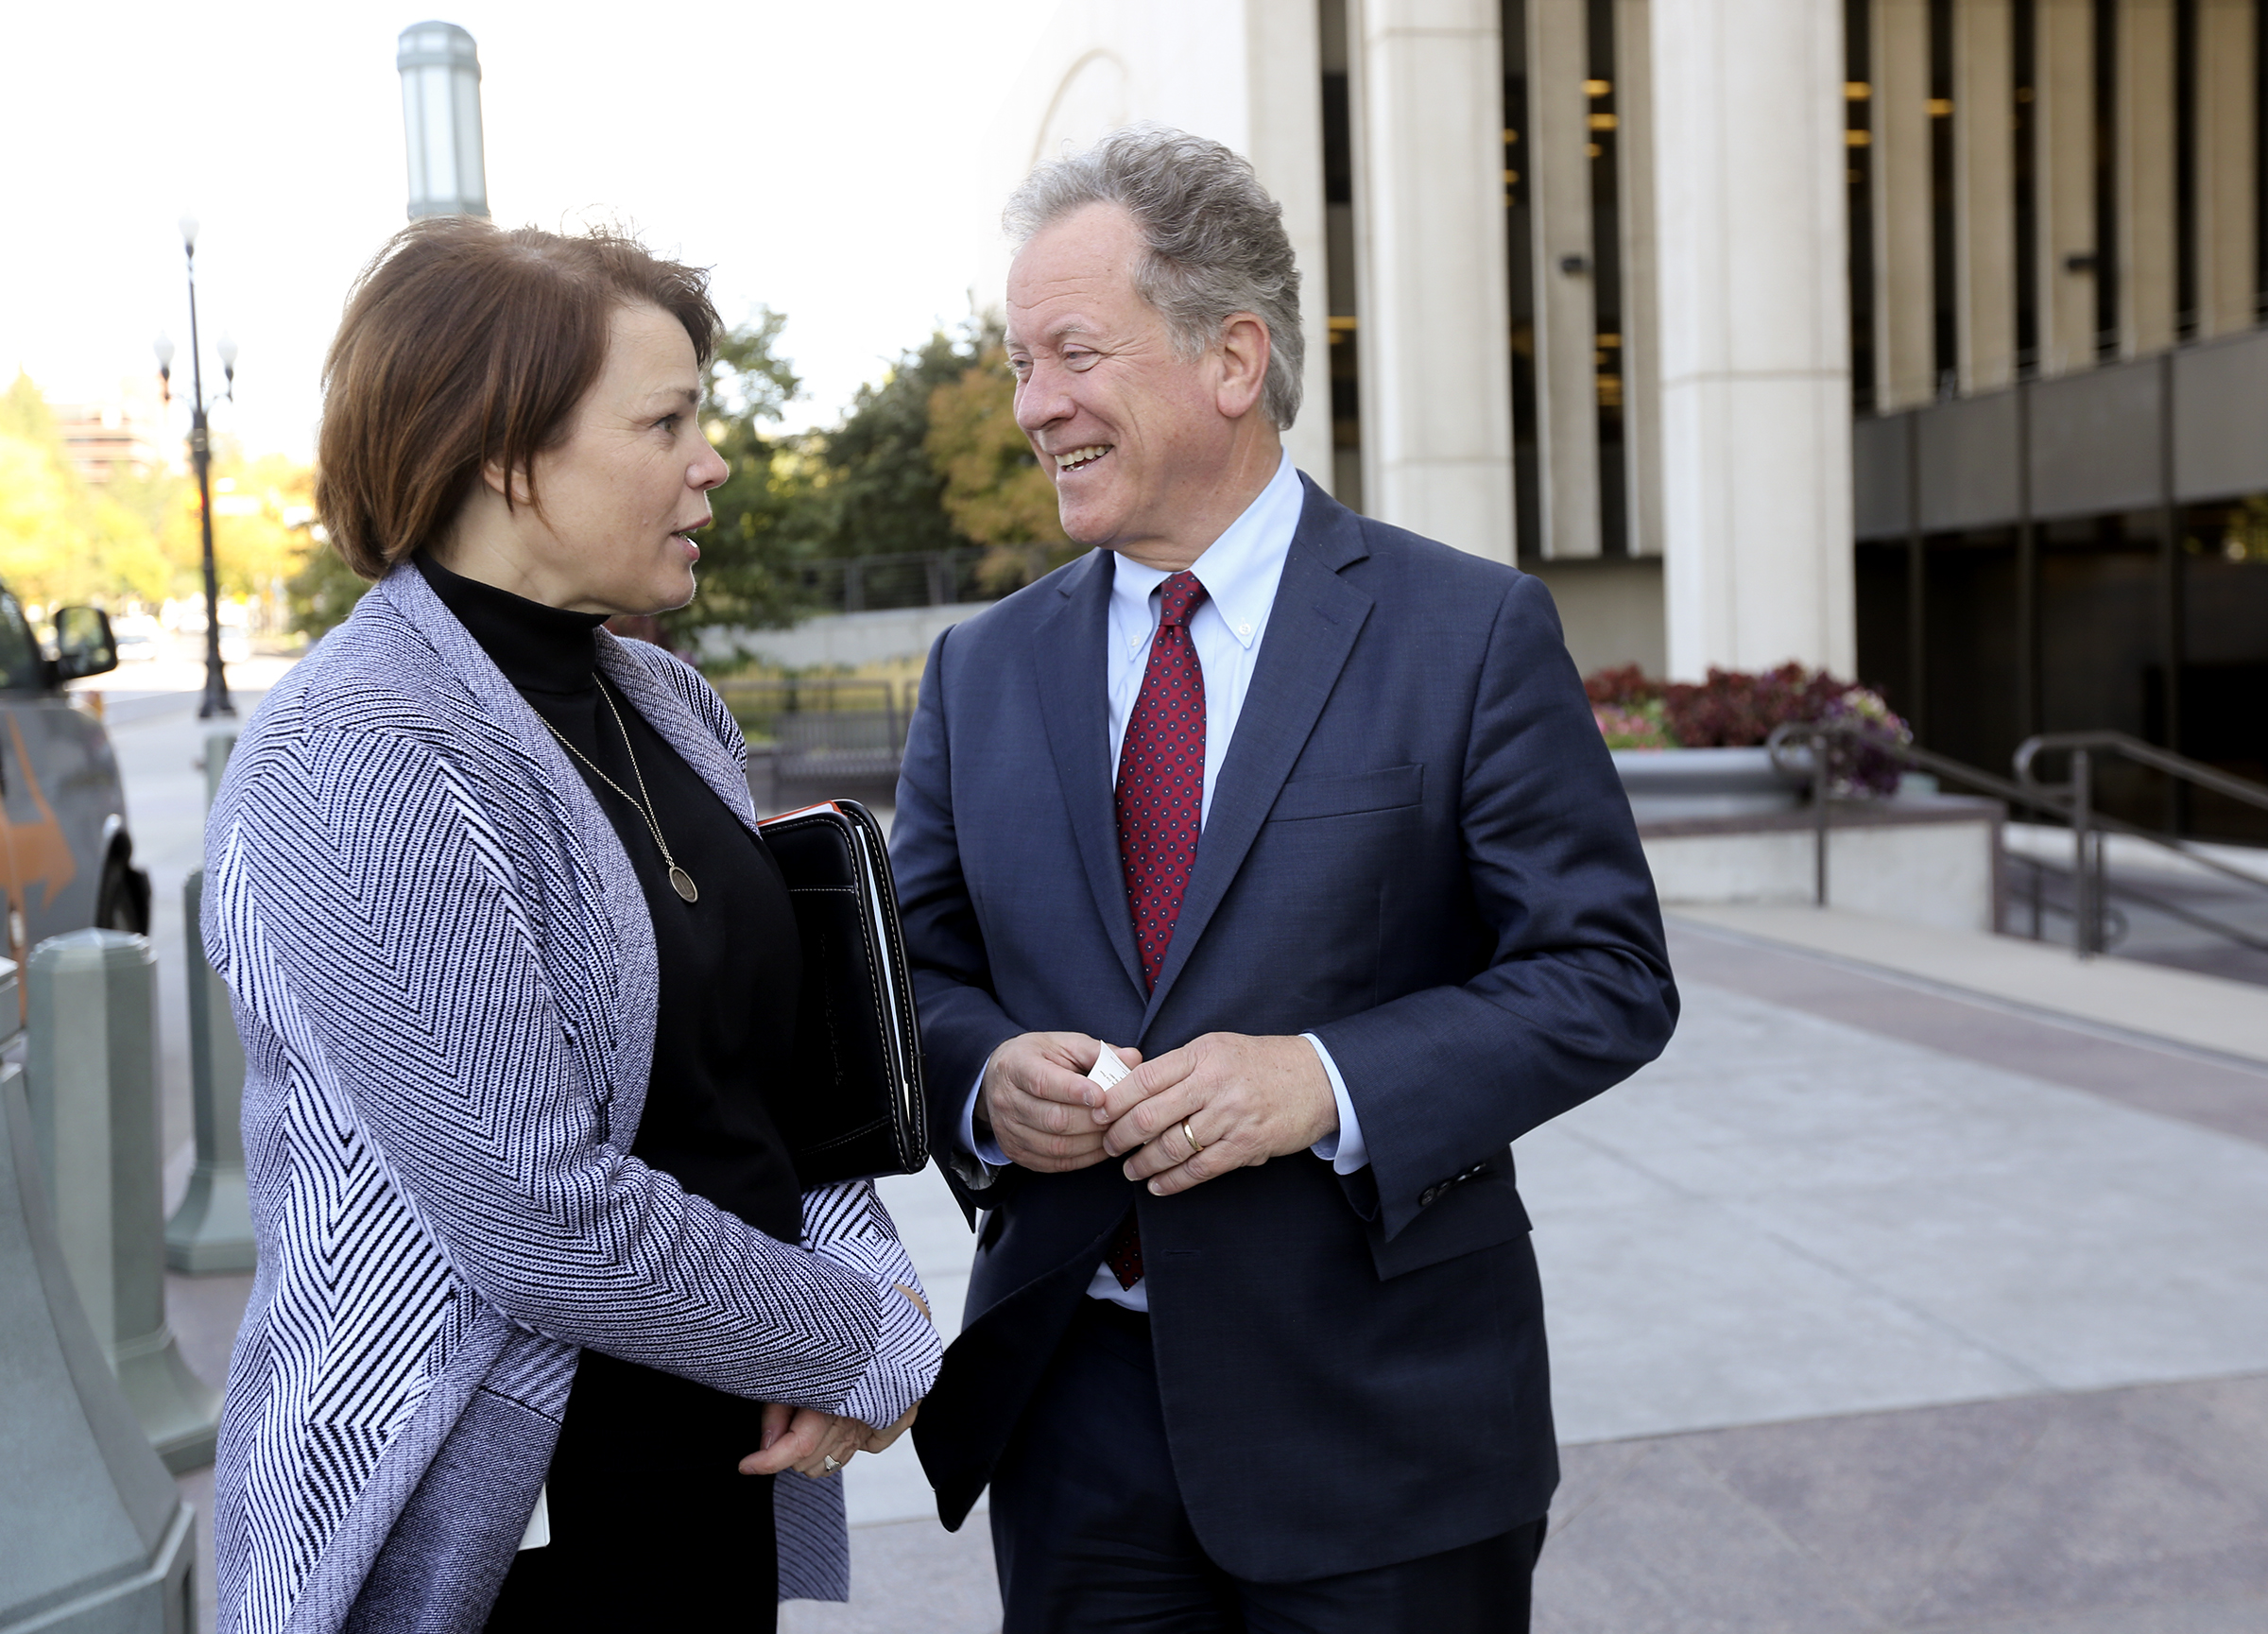 Sister Sharon Eubank, first counselor in the Relief Society general presidency of The Church of Jesus Christ of Latter-day Saints, talks with David Beasley, United Nations World Food Programme executive director, outside of the Church Office Building in Salt Lake City on Monday, Sept. 30, 2019.